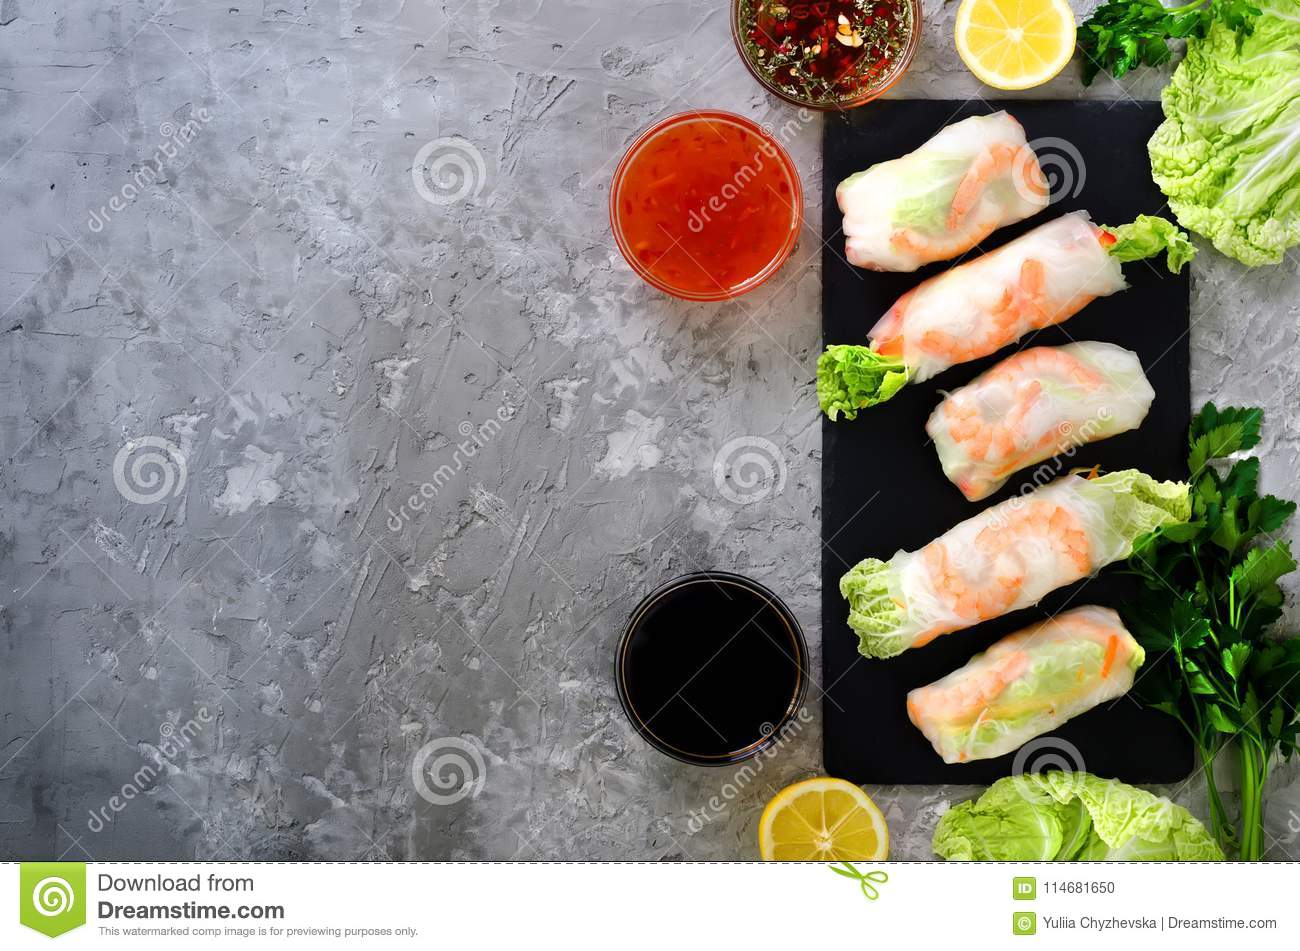 Fresh Vietnamese, Asian, Chinese food frame on grey concrete background. Spring rolls rice paper, lettuce, salad